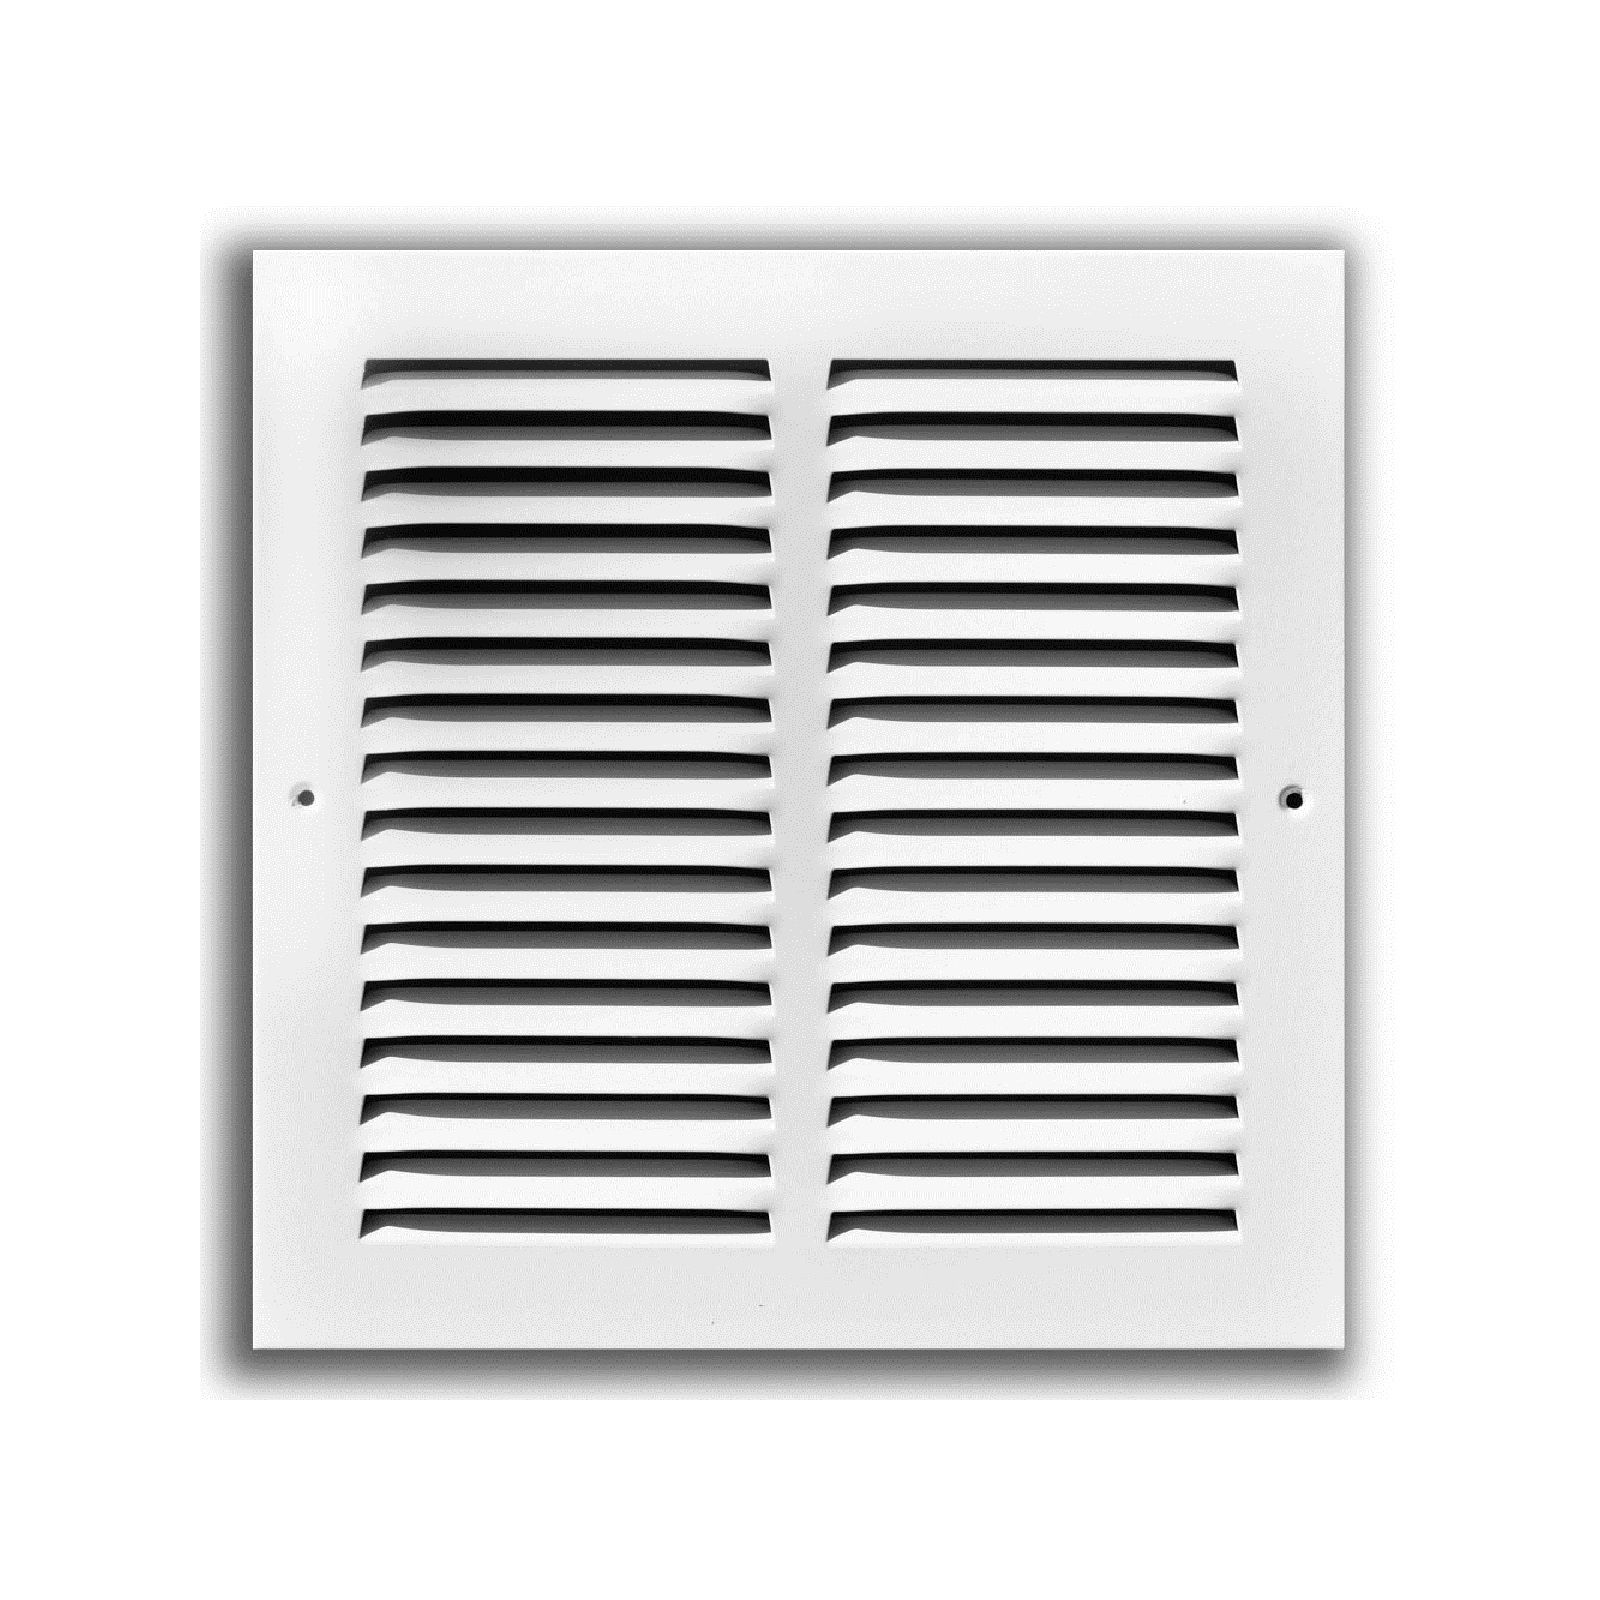 "TRUaire 170 24X08 - Steel Return Air Grille - 1/2"" Spaced Fin, White, 24"" X 08"""